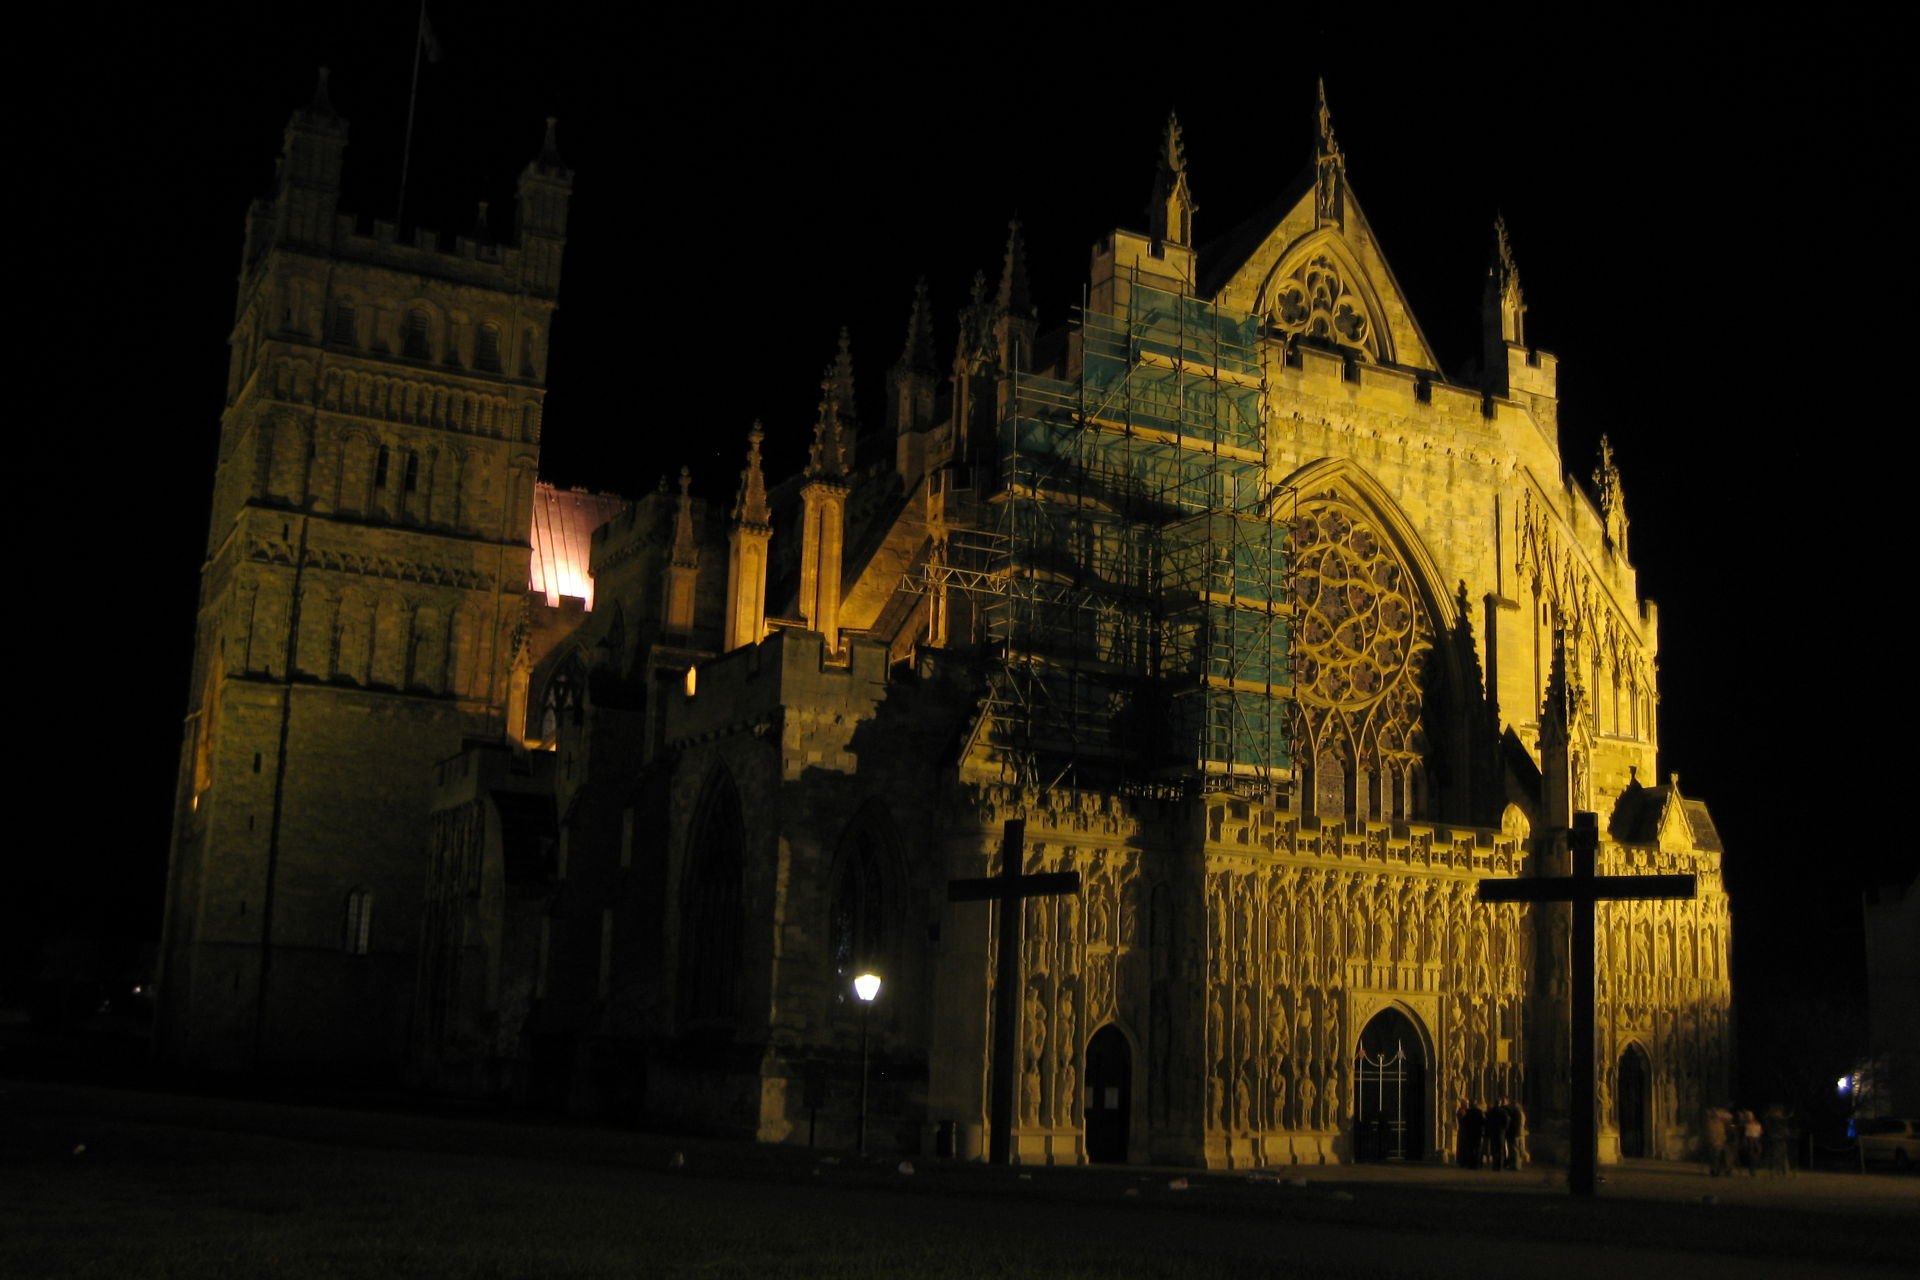 Particulart popped up for Holy Ground at Exeter Cathedral